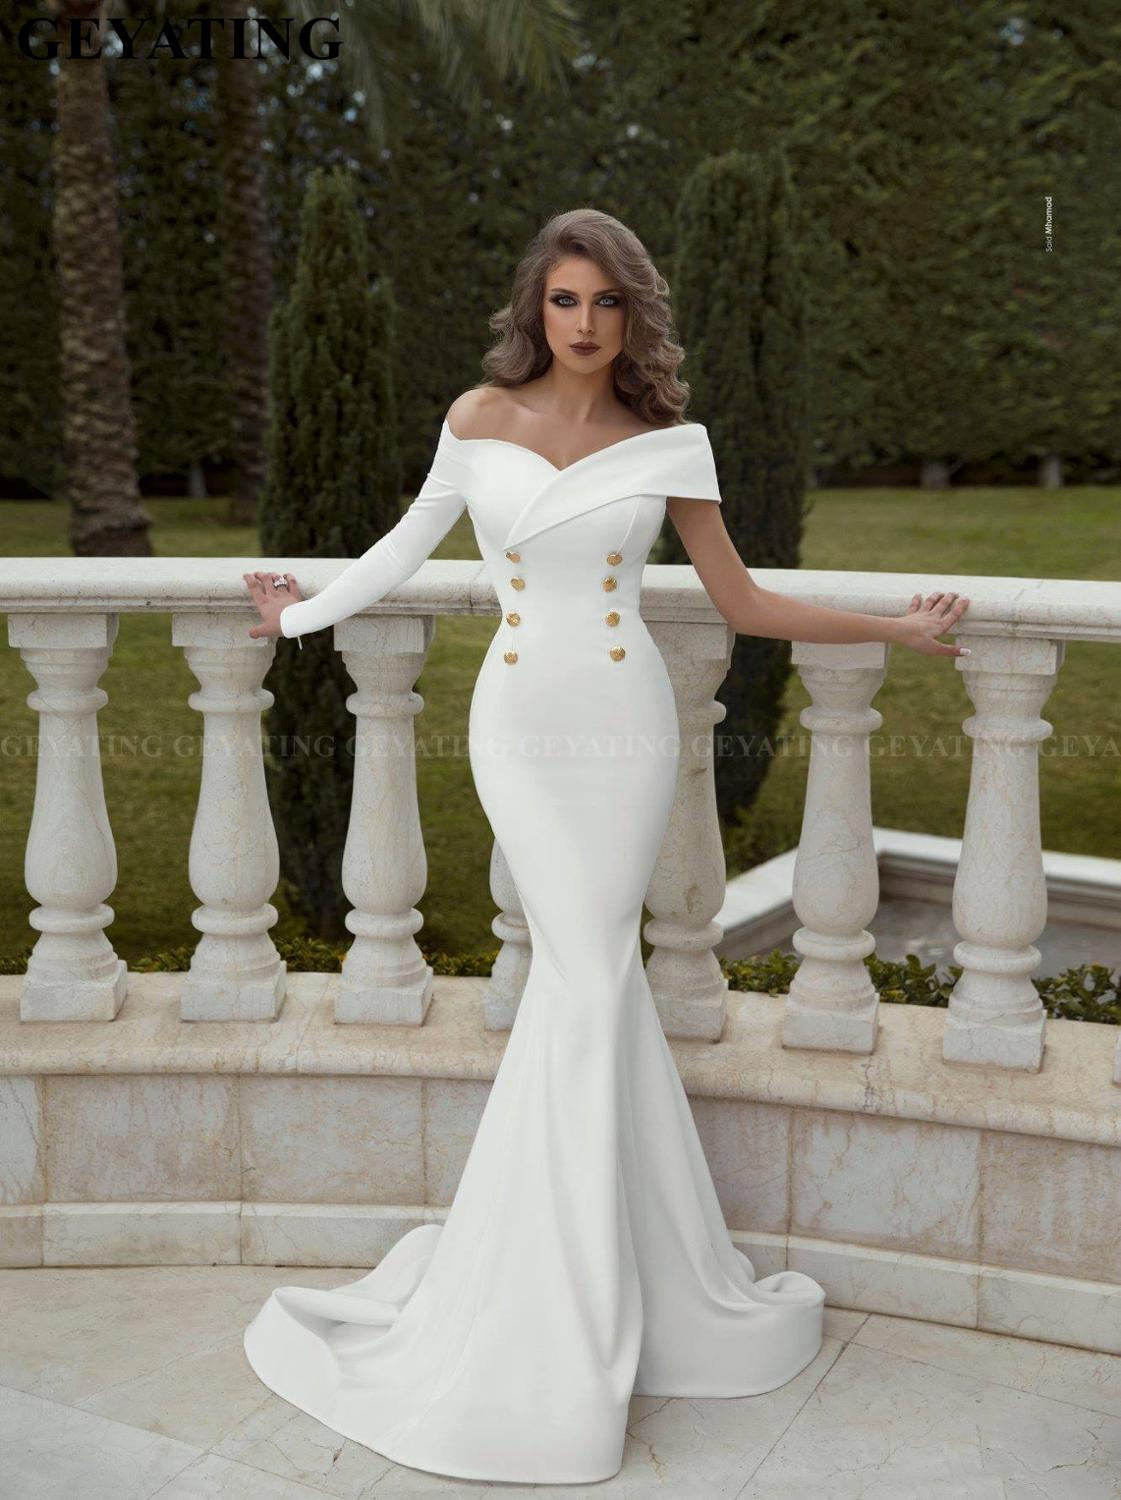 Elegant Long White Mermaid Dubai Evening Dresses 2020 Off The Shoulder One Sleeve Arabic Prom Dress Buttons Formal Party Gowns